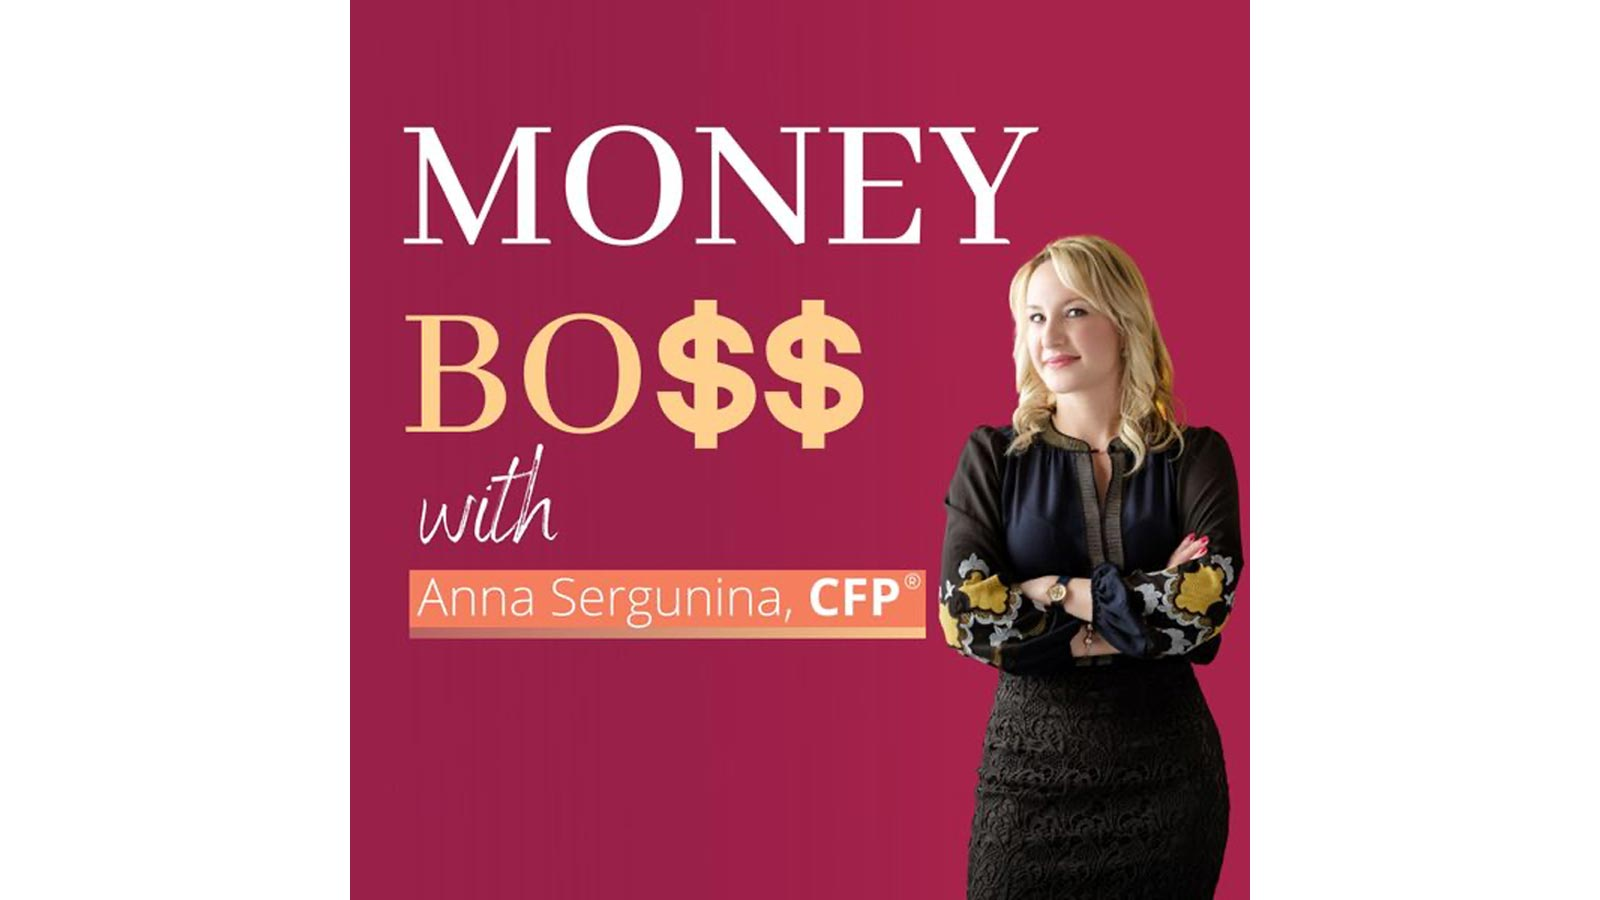 Money Boss Podcast with Anna Sergunina CFP